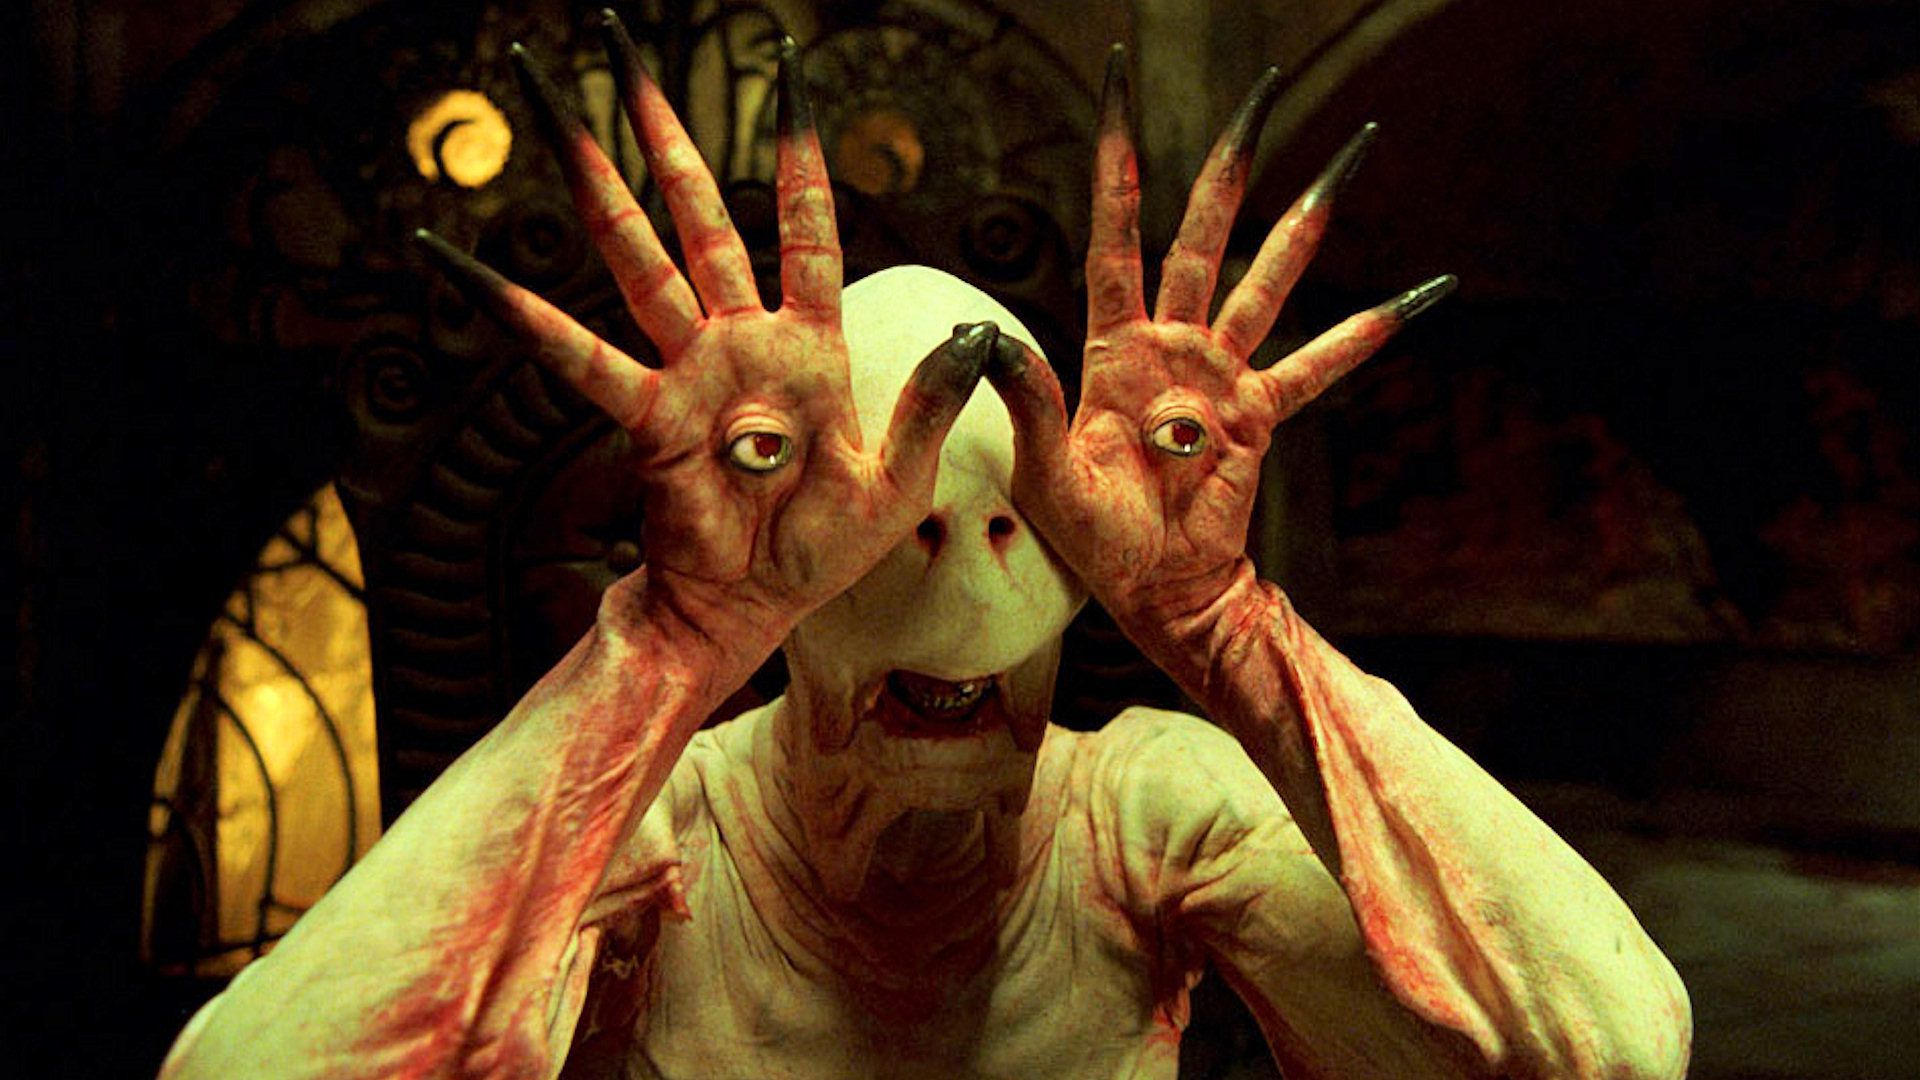 Best 20 Fantasy - Migliori Film - Pans Labyrinth - Labirinto del Fauno - Monster without eyes - eye in the hands